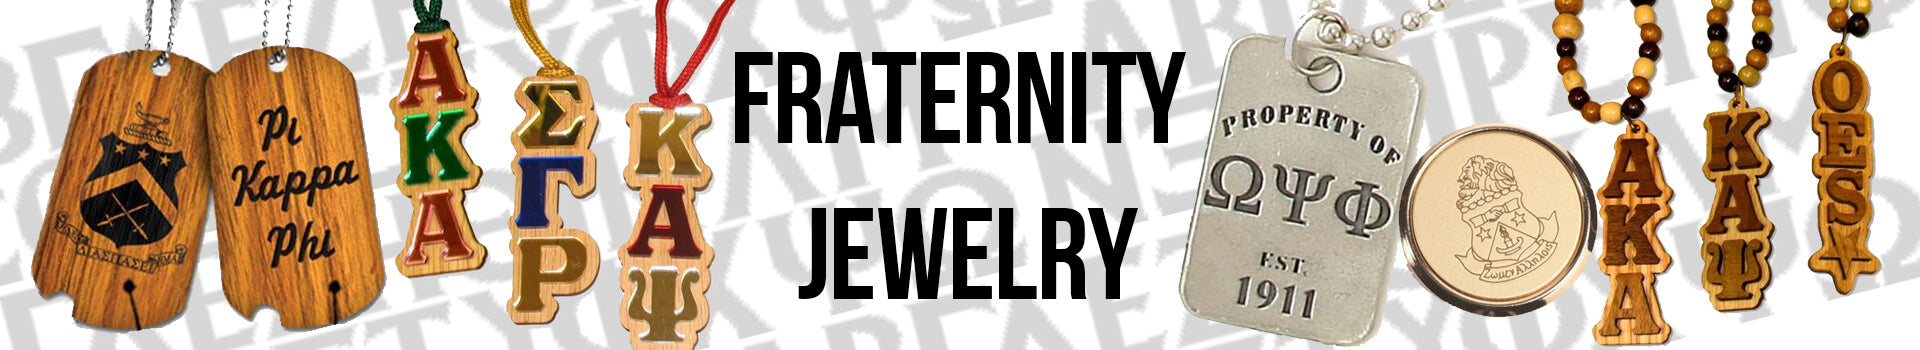 Custom Greek Fraternity Jewelry and Necklaces